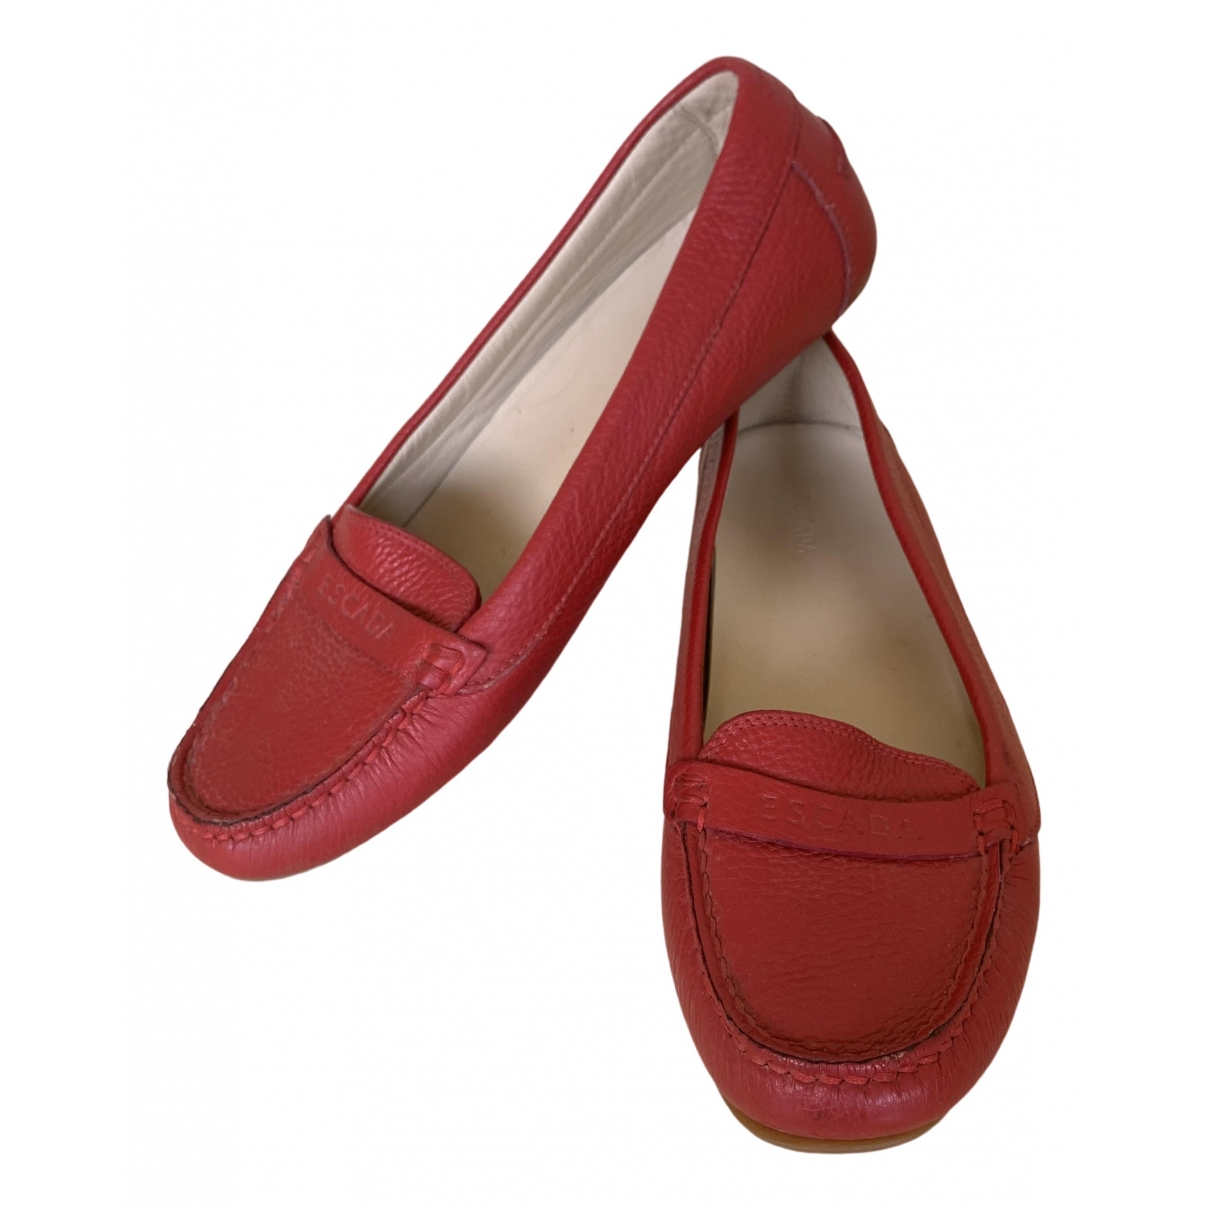 Escada \N Red Leather Flats for Women 39 EU